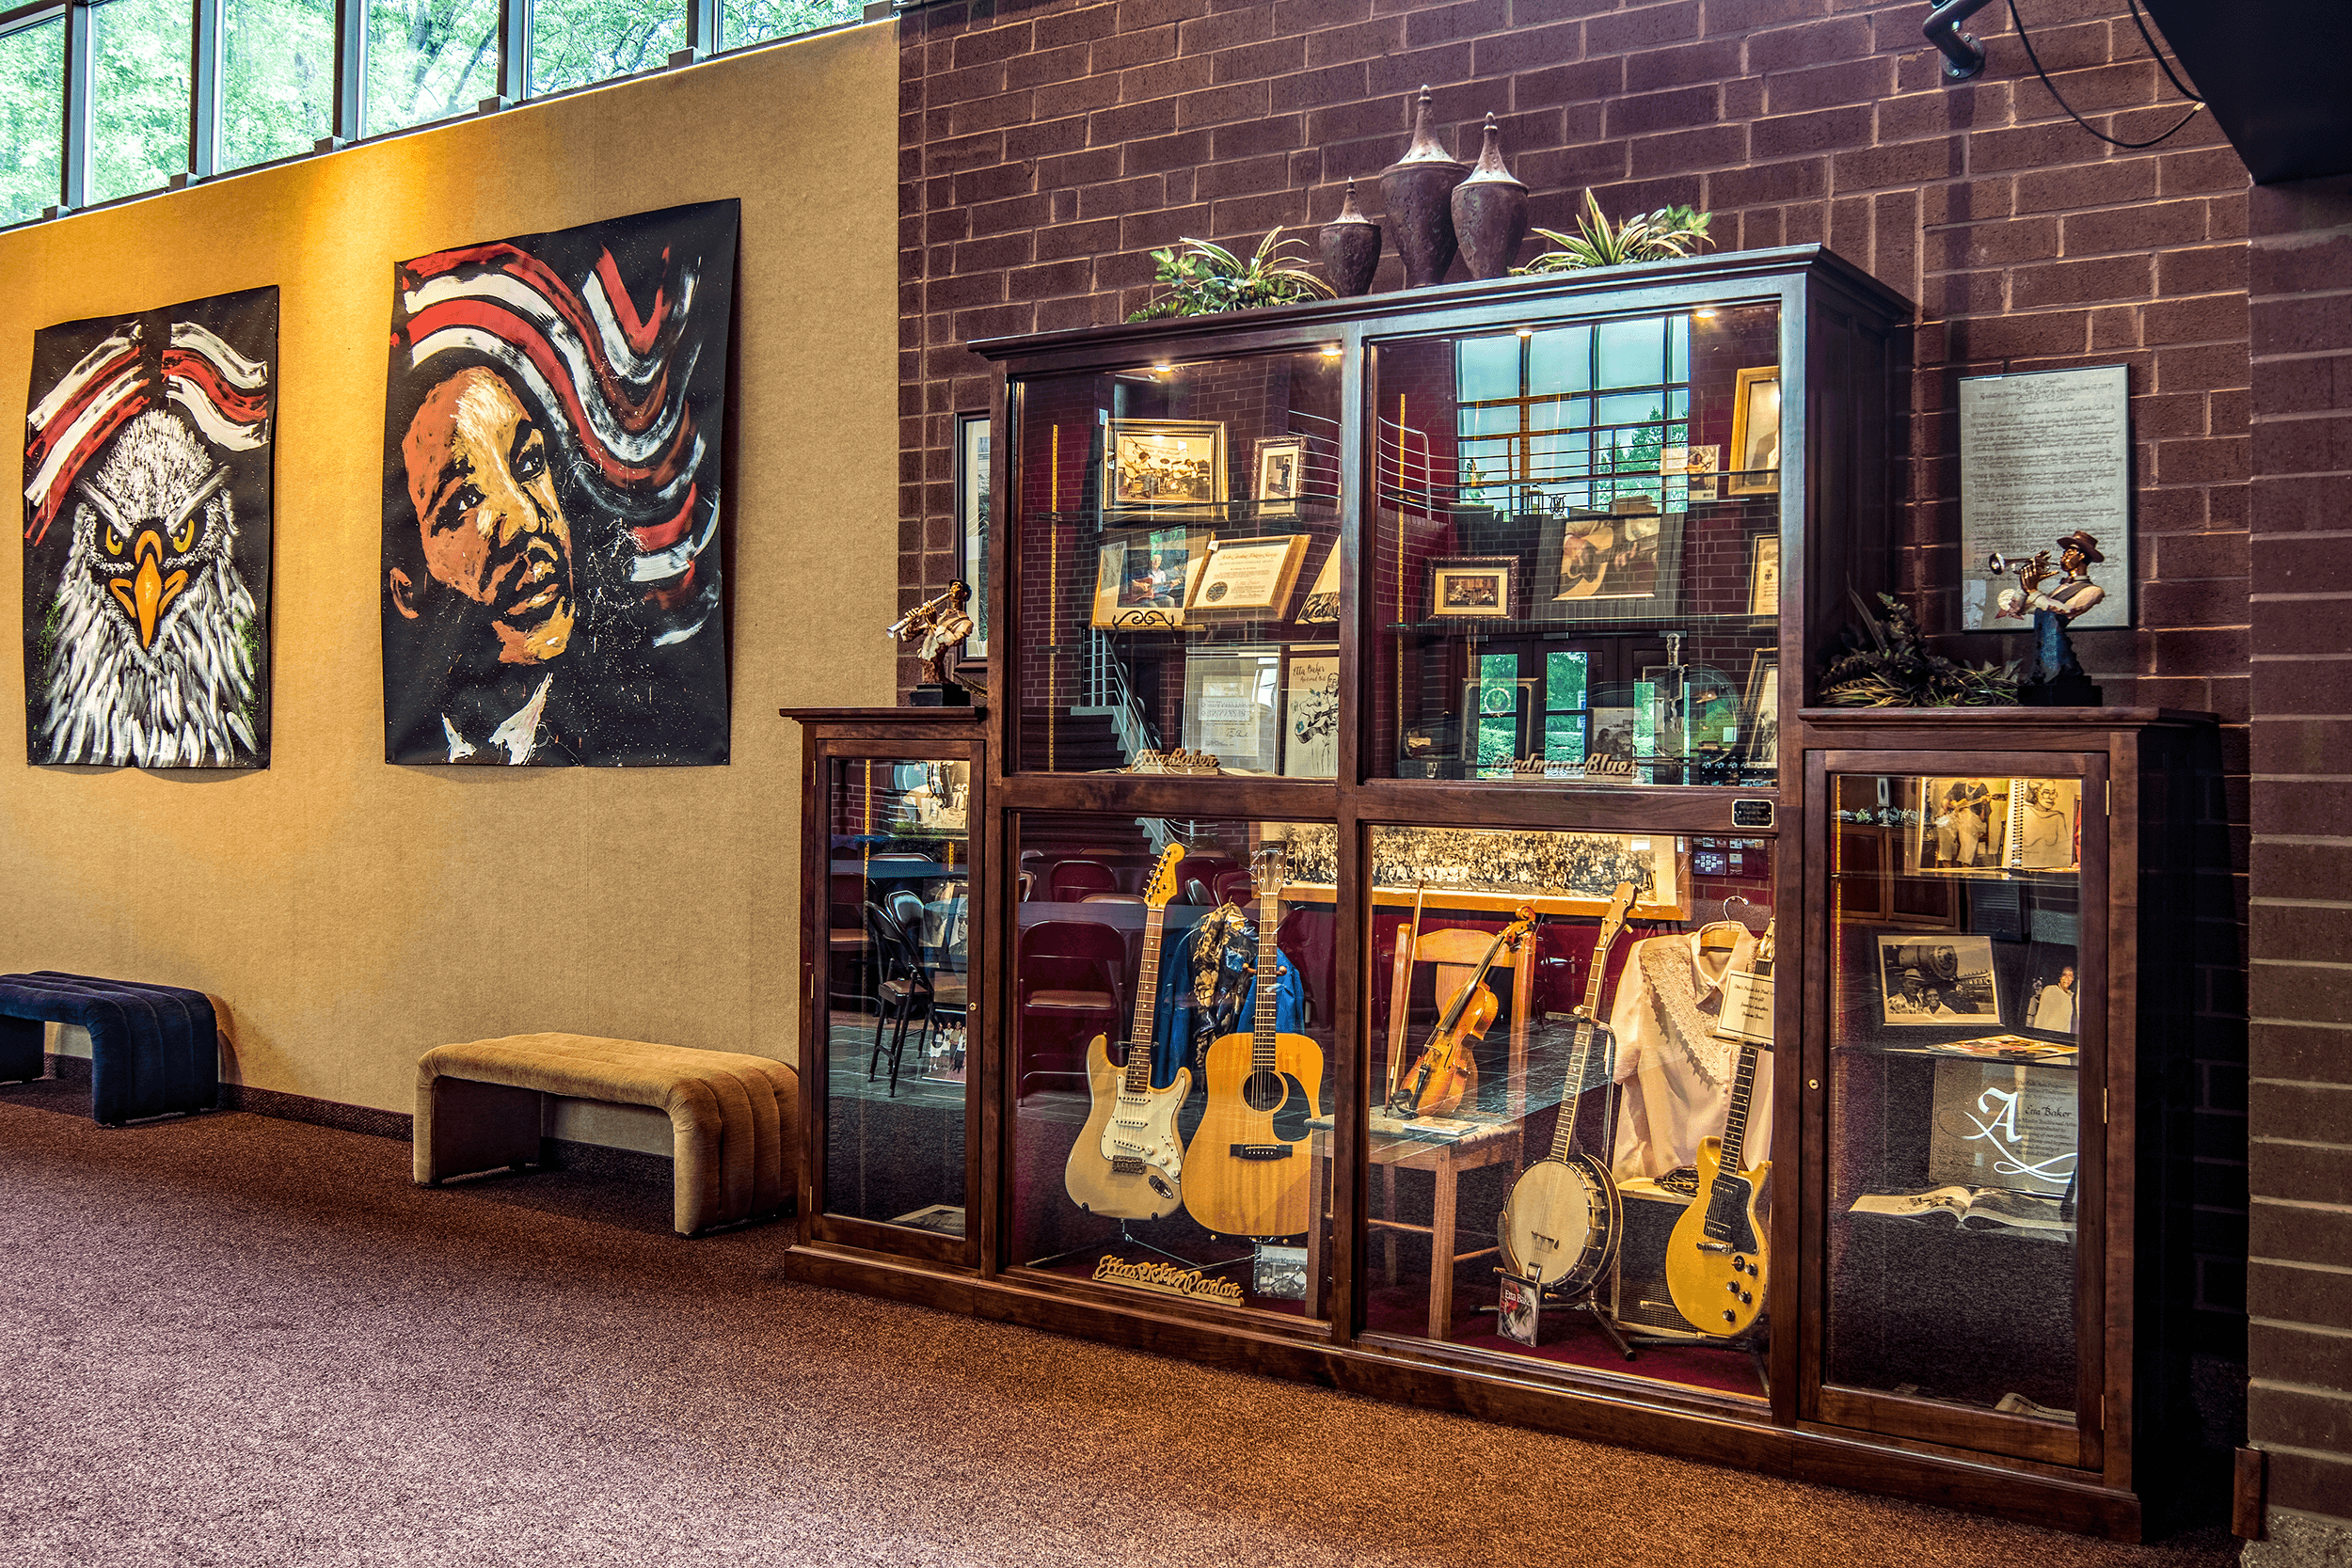 Etta Baker with her husband Lee raised nine children, many of which continue the family's musical tradition to this day. Several of Etta's instruments and other memorabilia are displayed in a memorial case in the atrium of the  Municipal Auditorium .